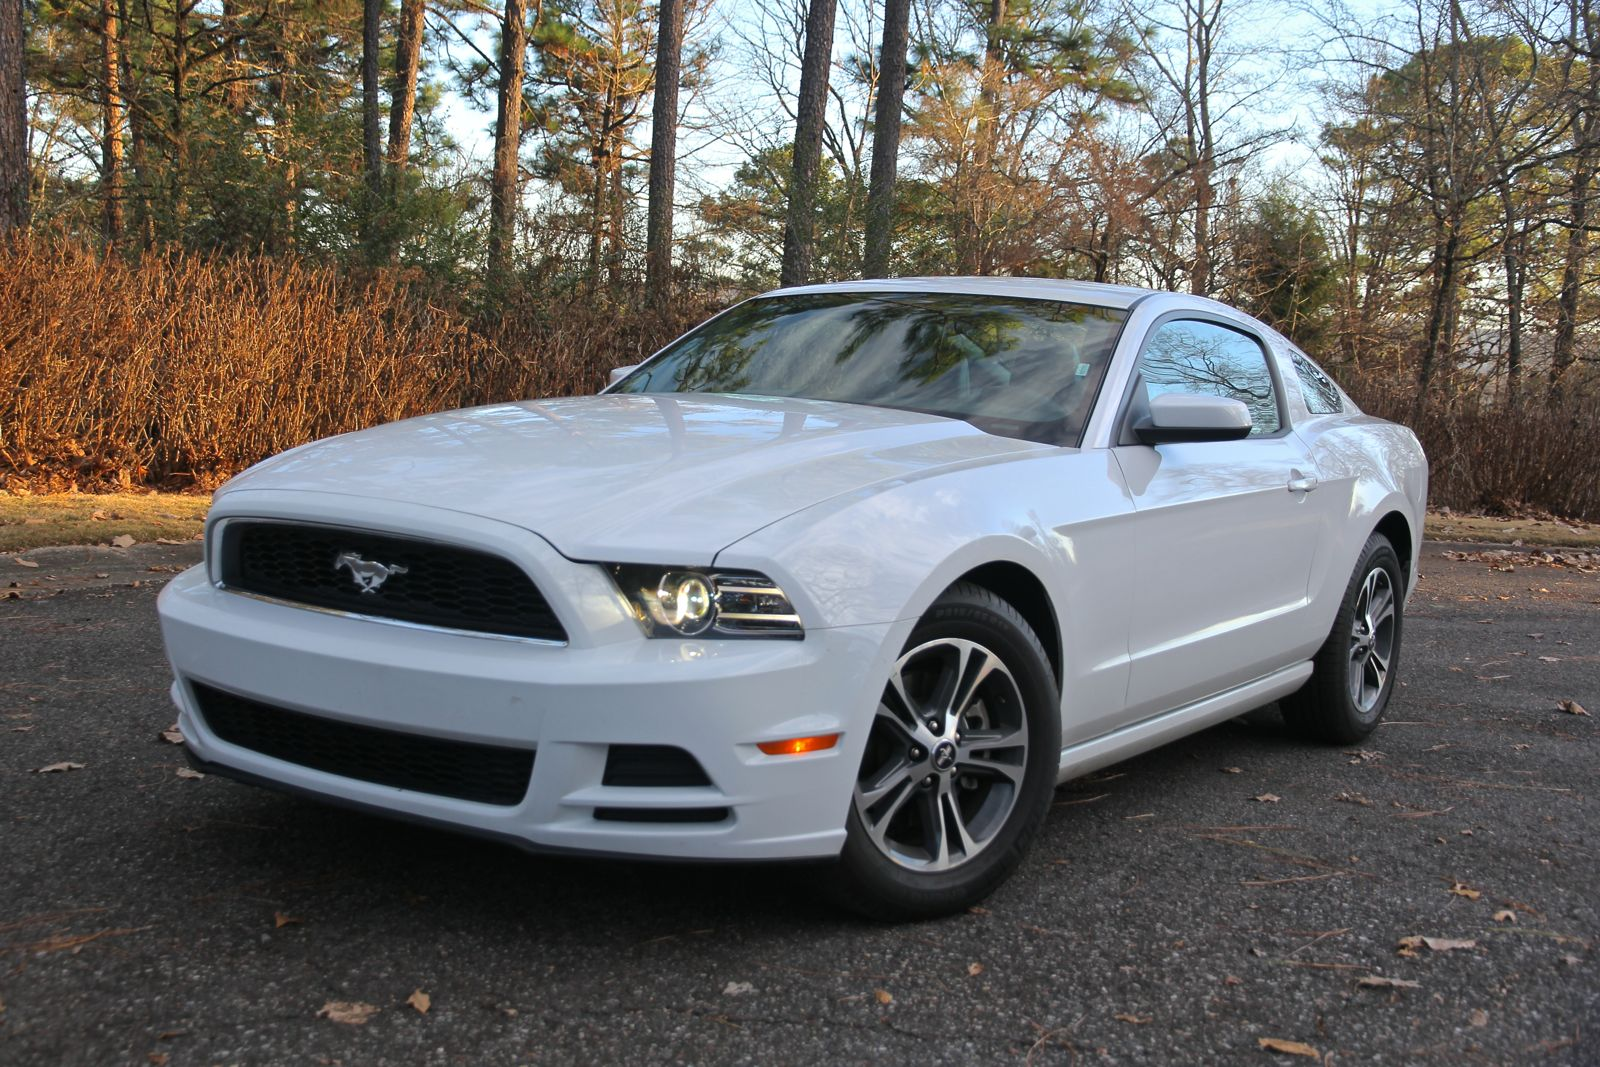 2014 Ford Mustang Review : V6 Premium - photos | CarAdvice